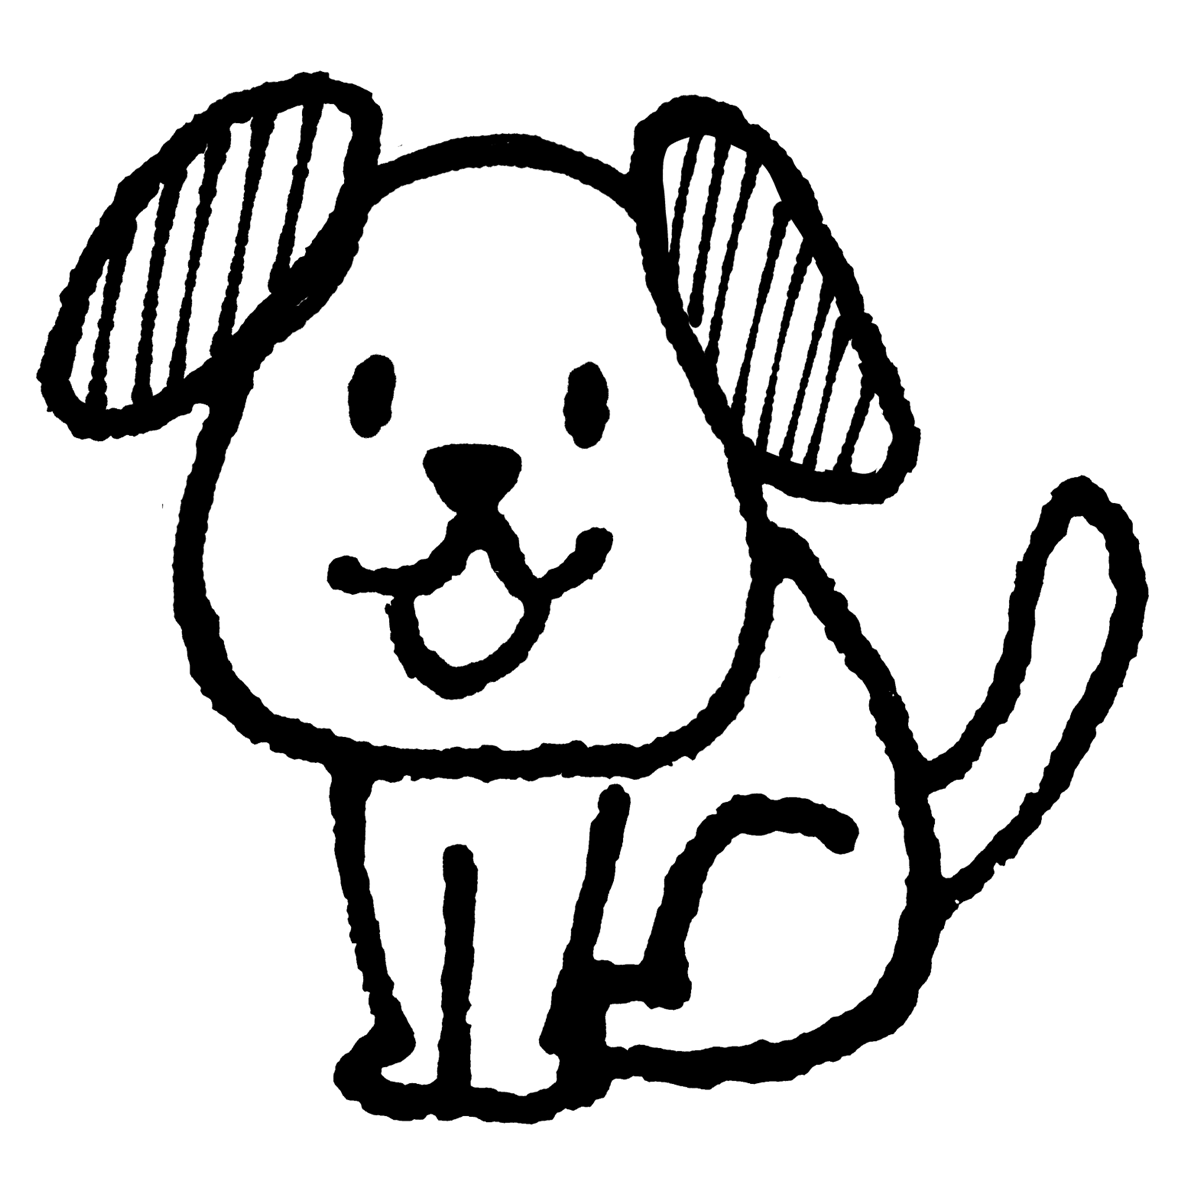 座る犬のイラスト Sitting dog  Illustration